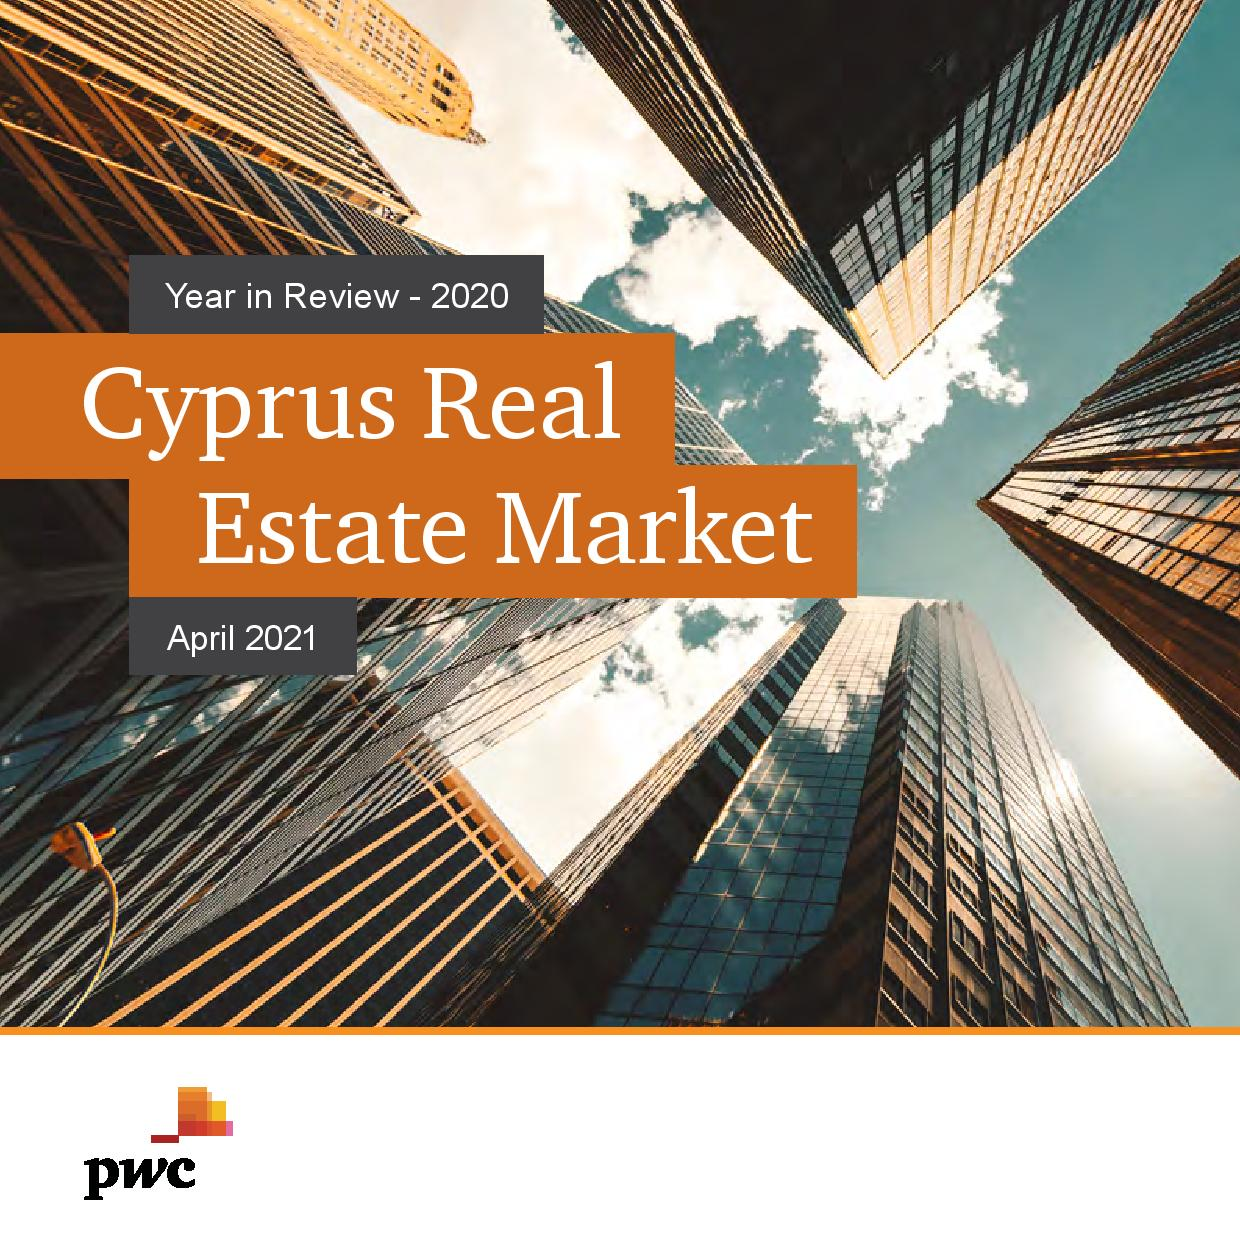 PwC: Cyprus Real Estate Market - Year in Review 2020